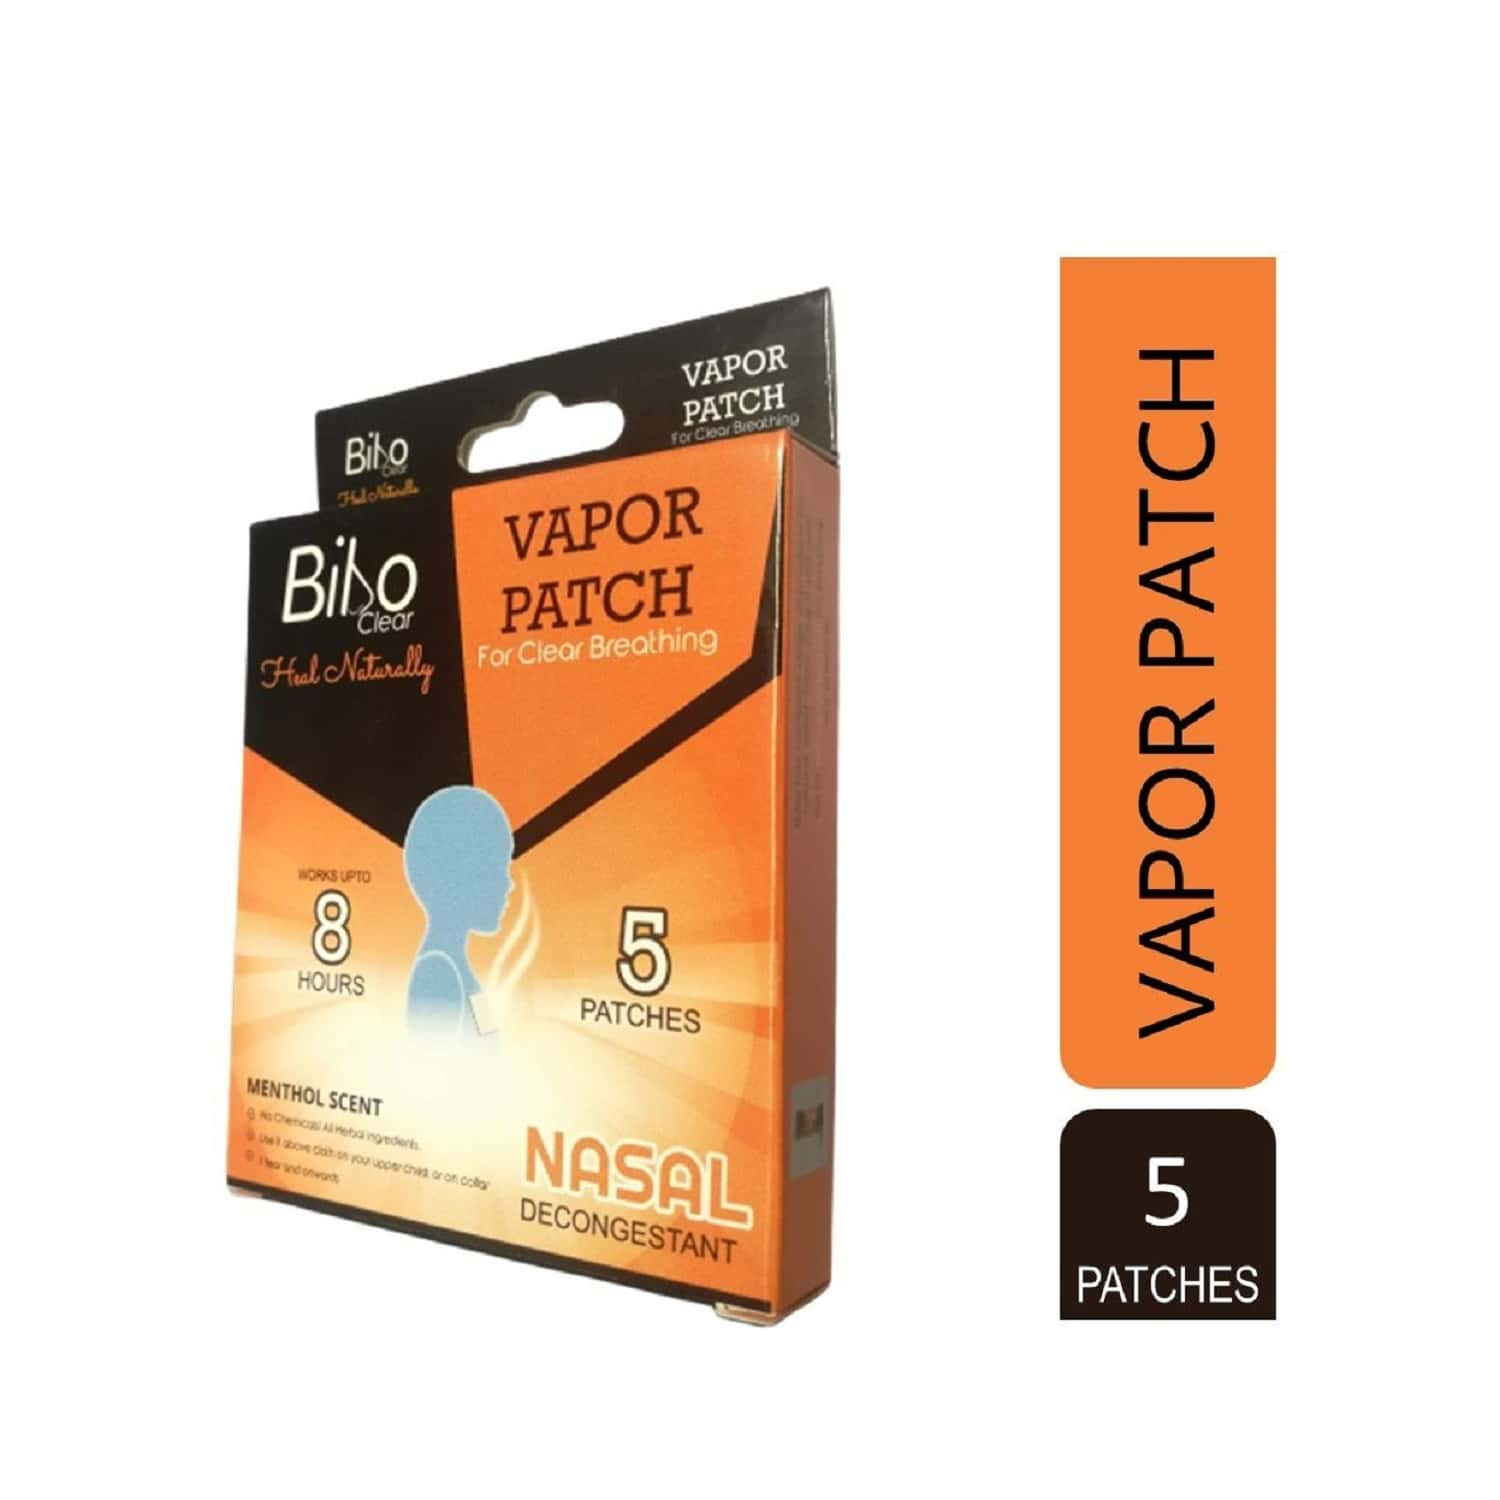 Bibo Clear Vapour Patch - A Hands' Free Inhaler - 1 Pack Of 5 Patches